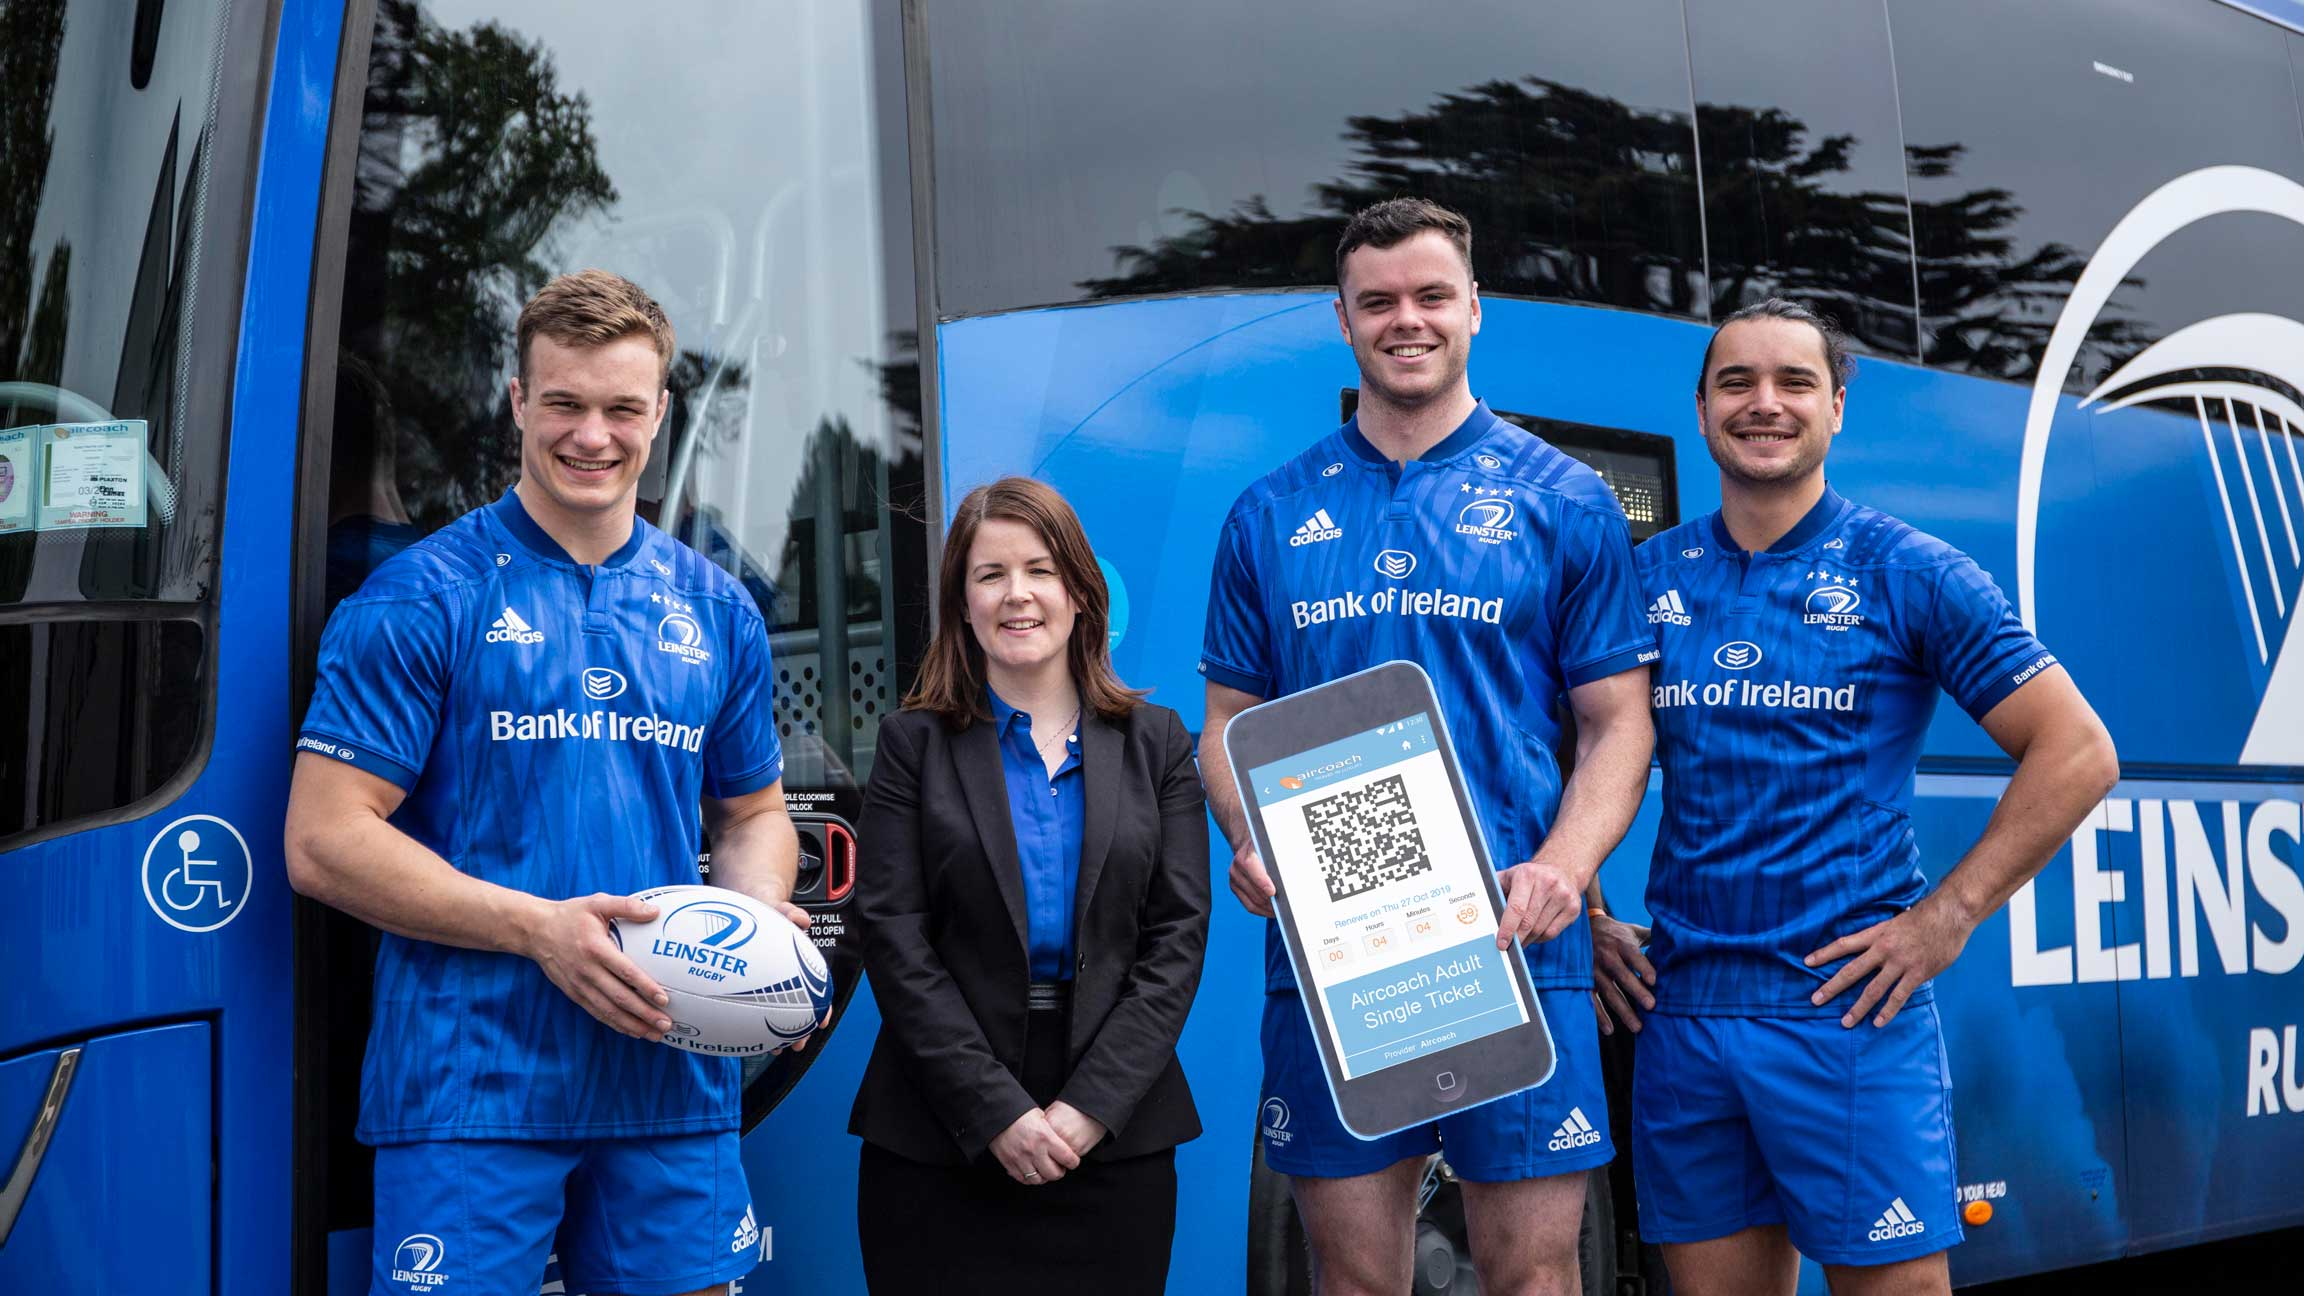 Leinster-rugby-pic-for-mTicket.jpg